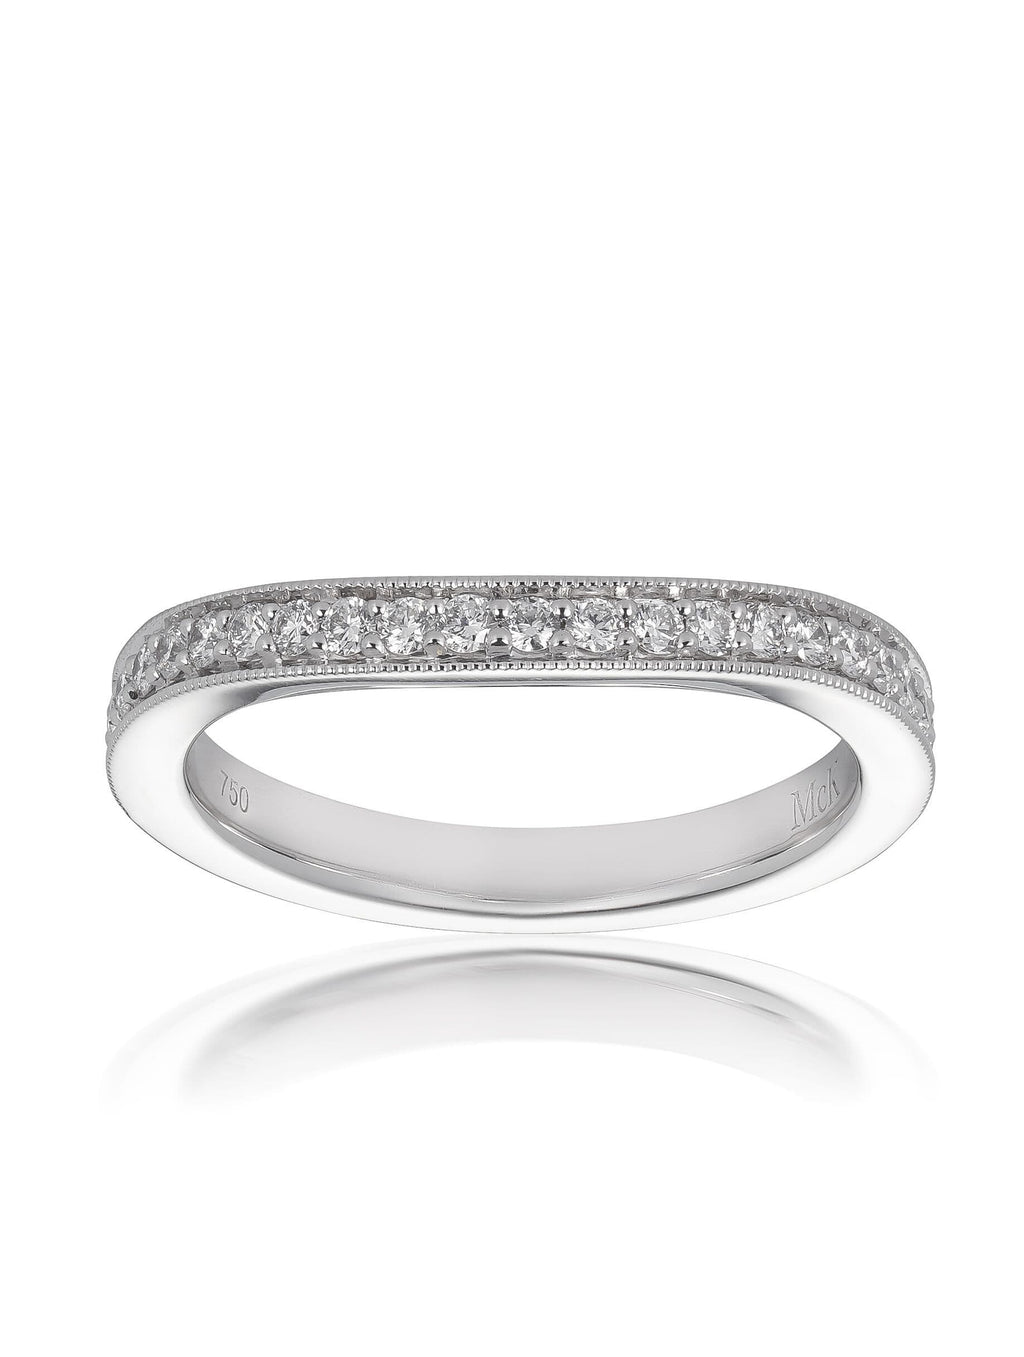 Curved Bead Set Round Brilliant Cut Diamond Ring